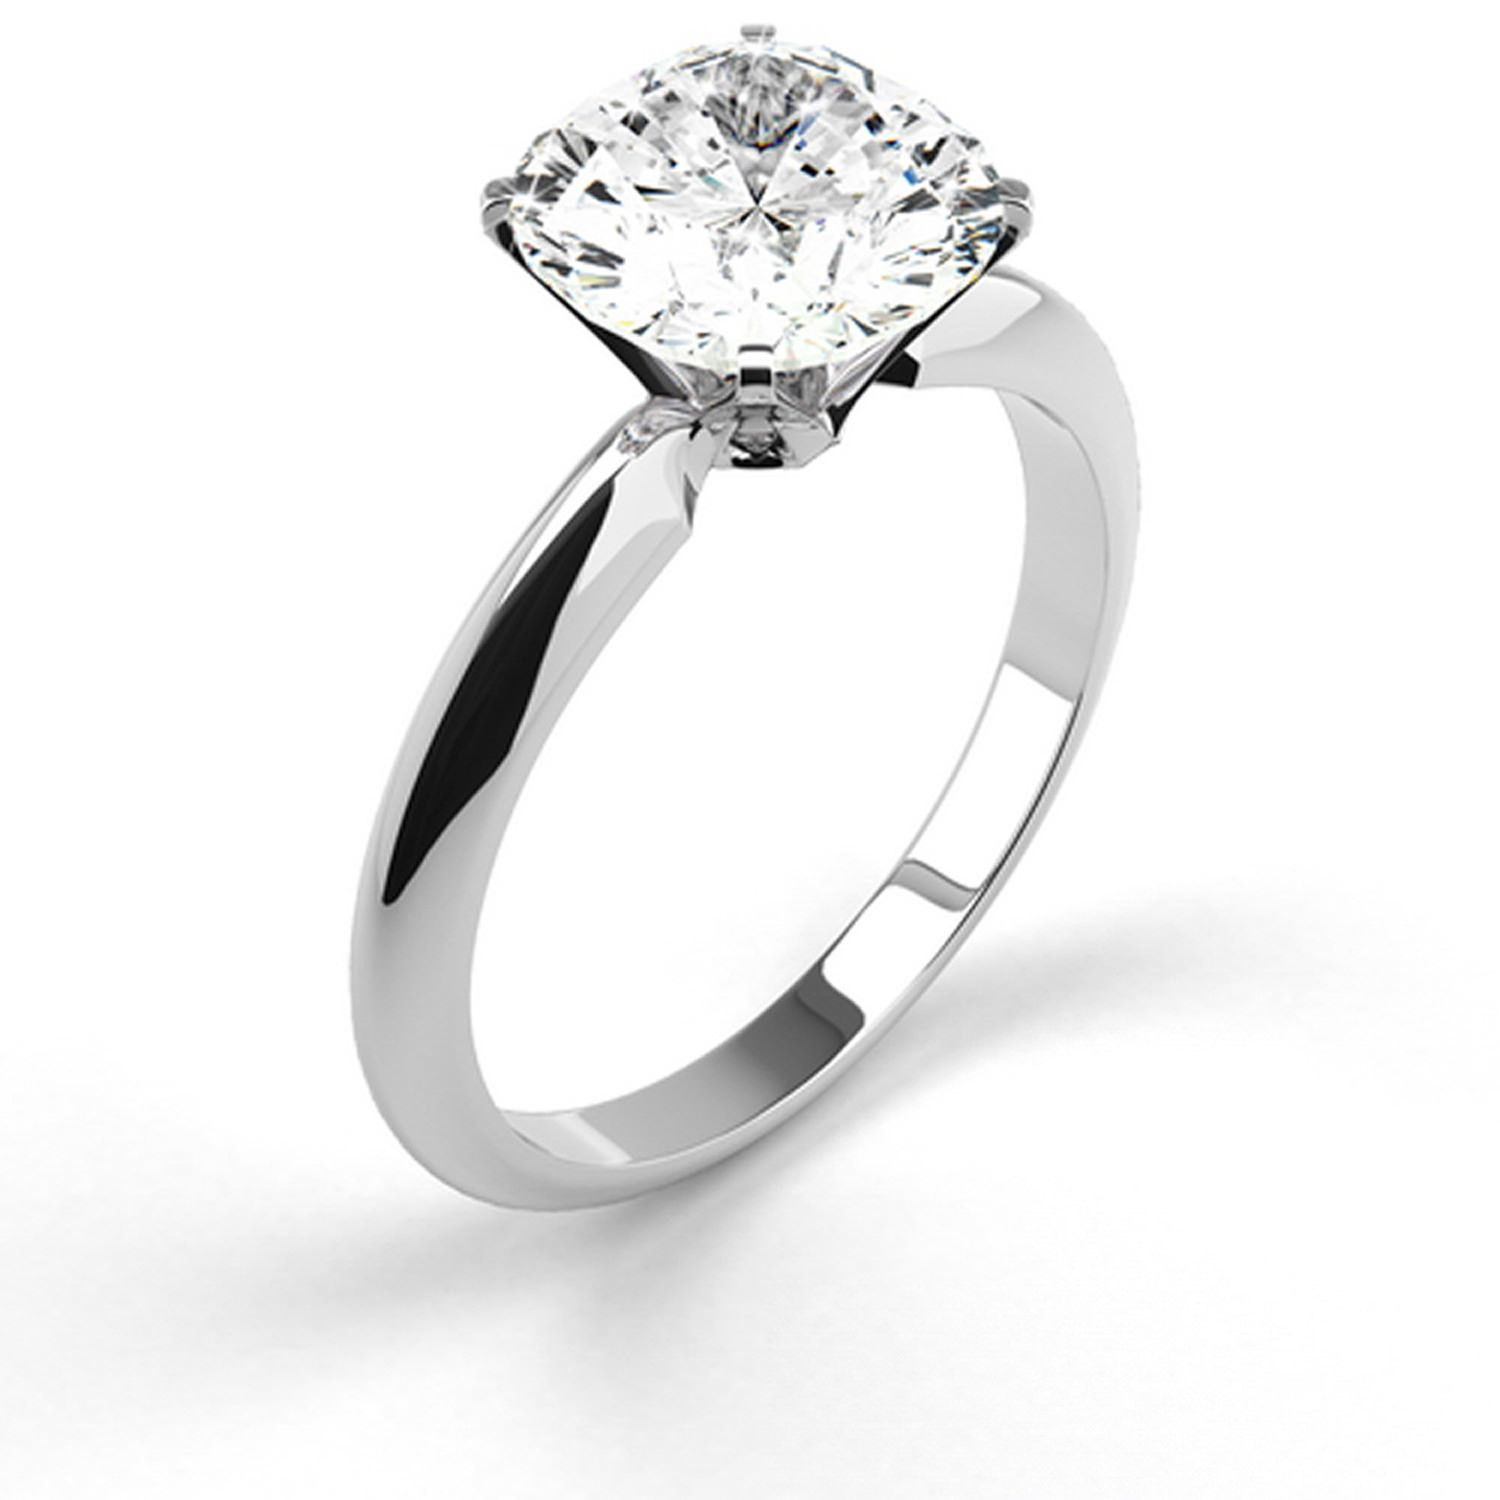 ring halo of rings engagement settings ideas featured diamond photo throughout wedding best promise jewellery vintage